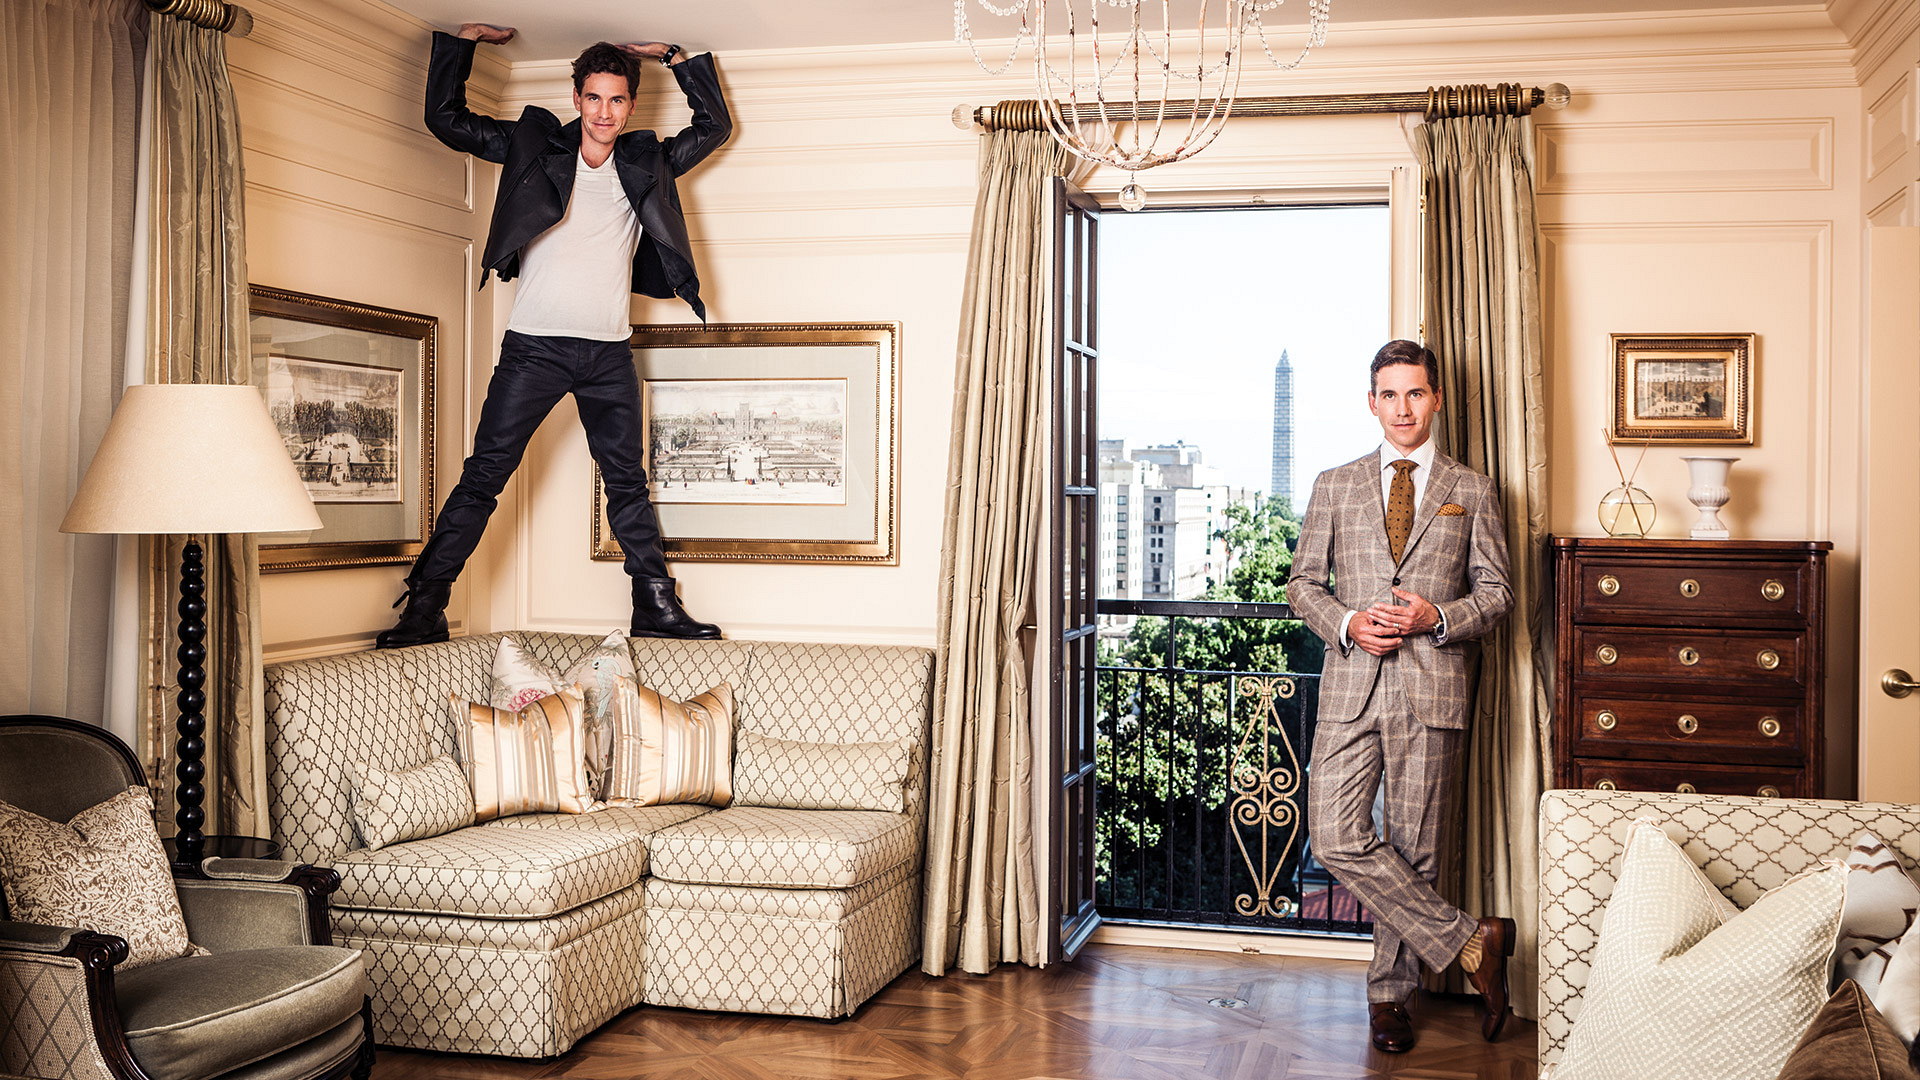 NCIS star Brian Dietzen raises the roof in these incredible photos